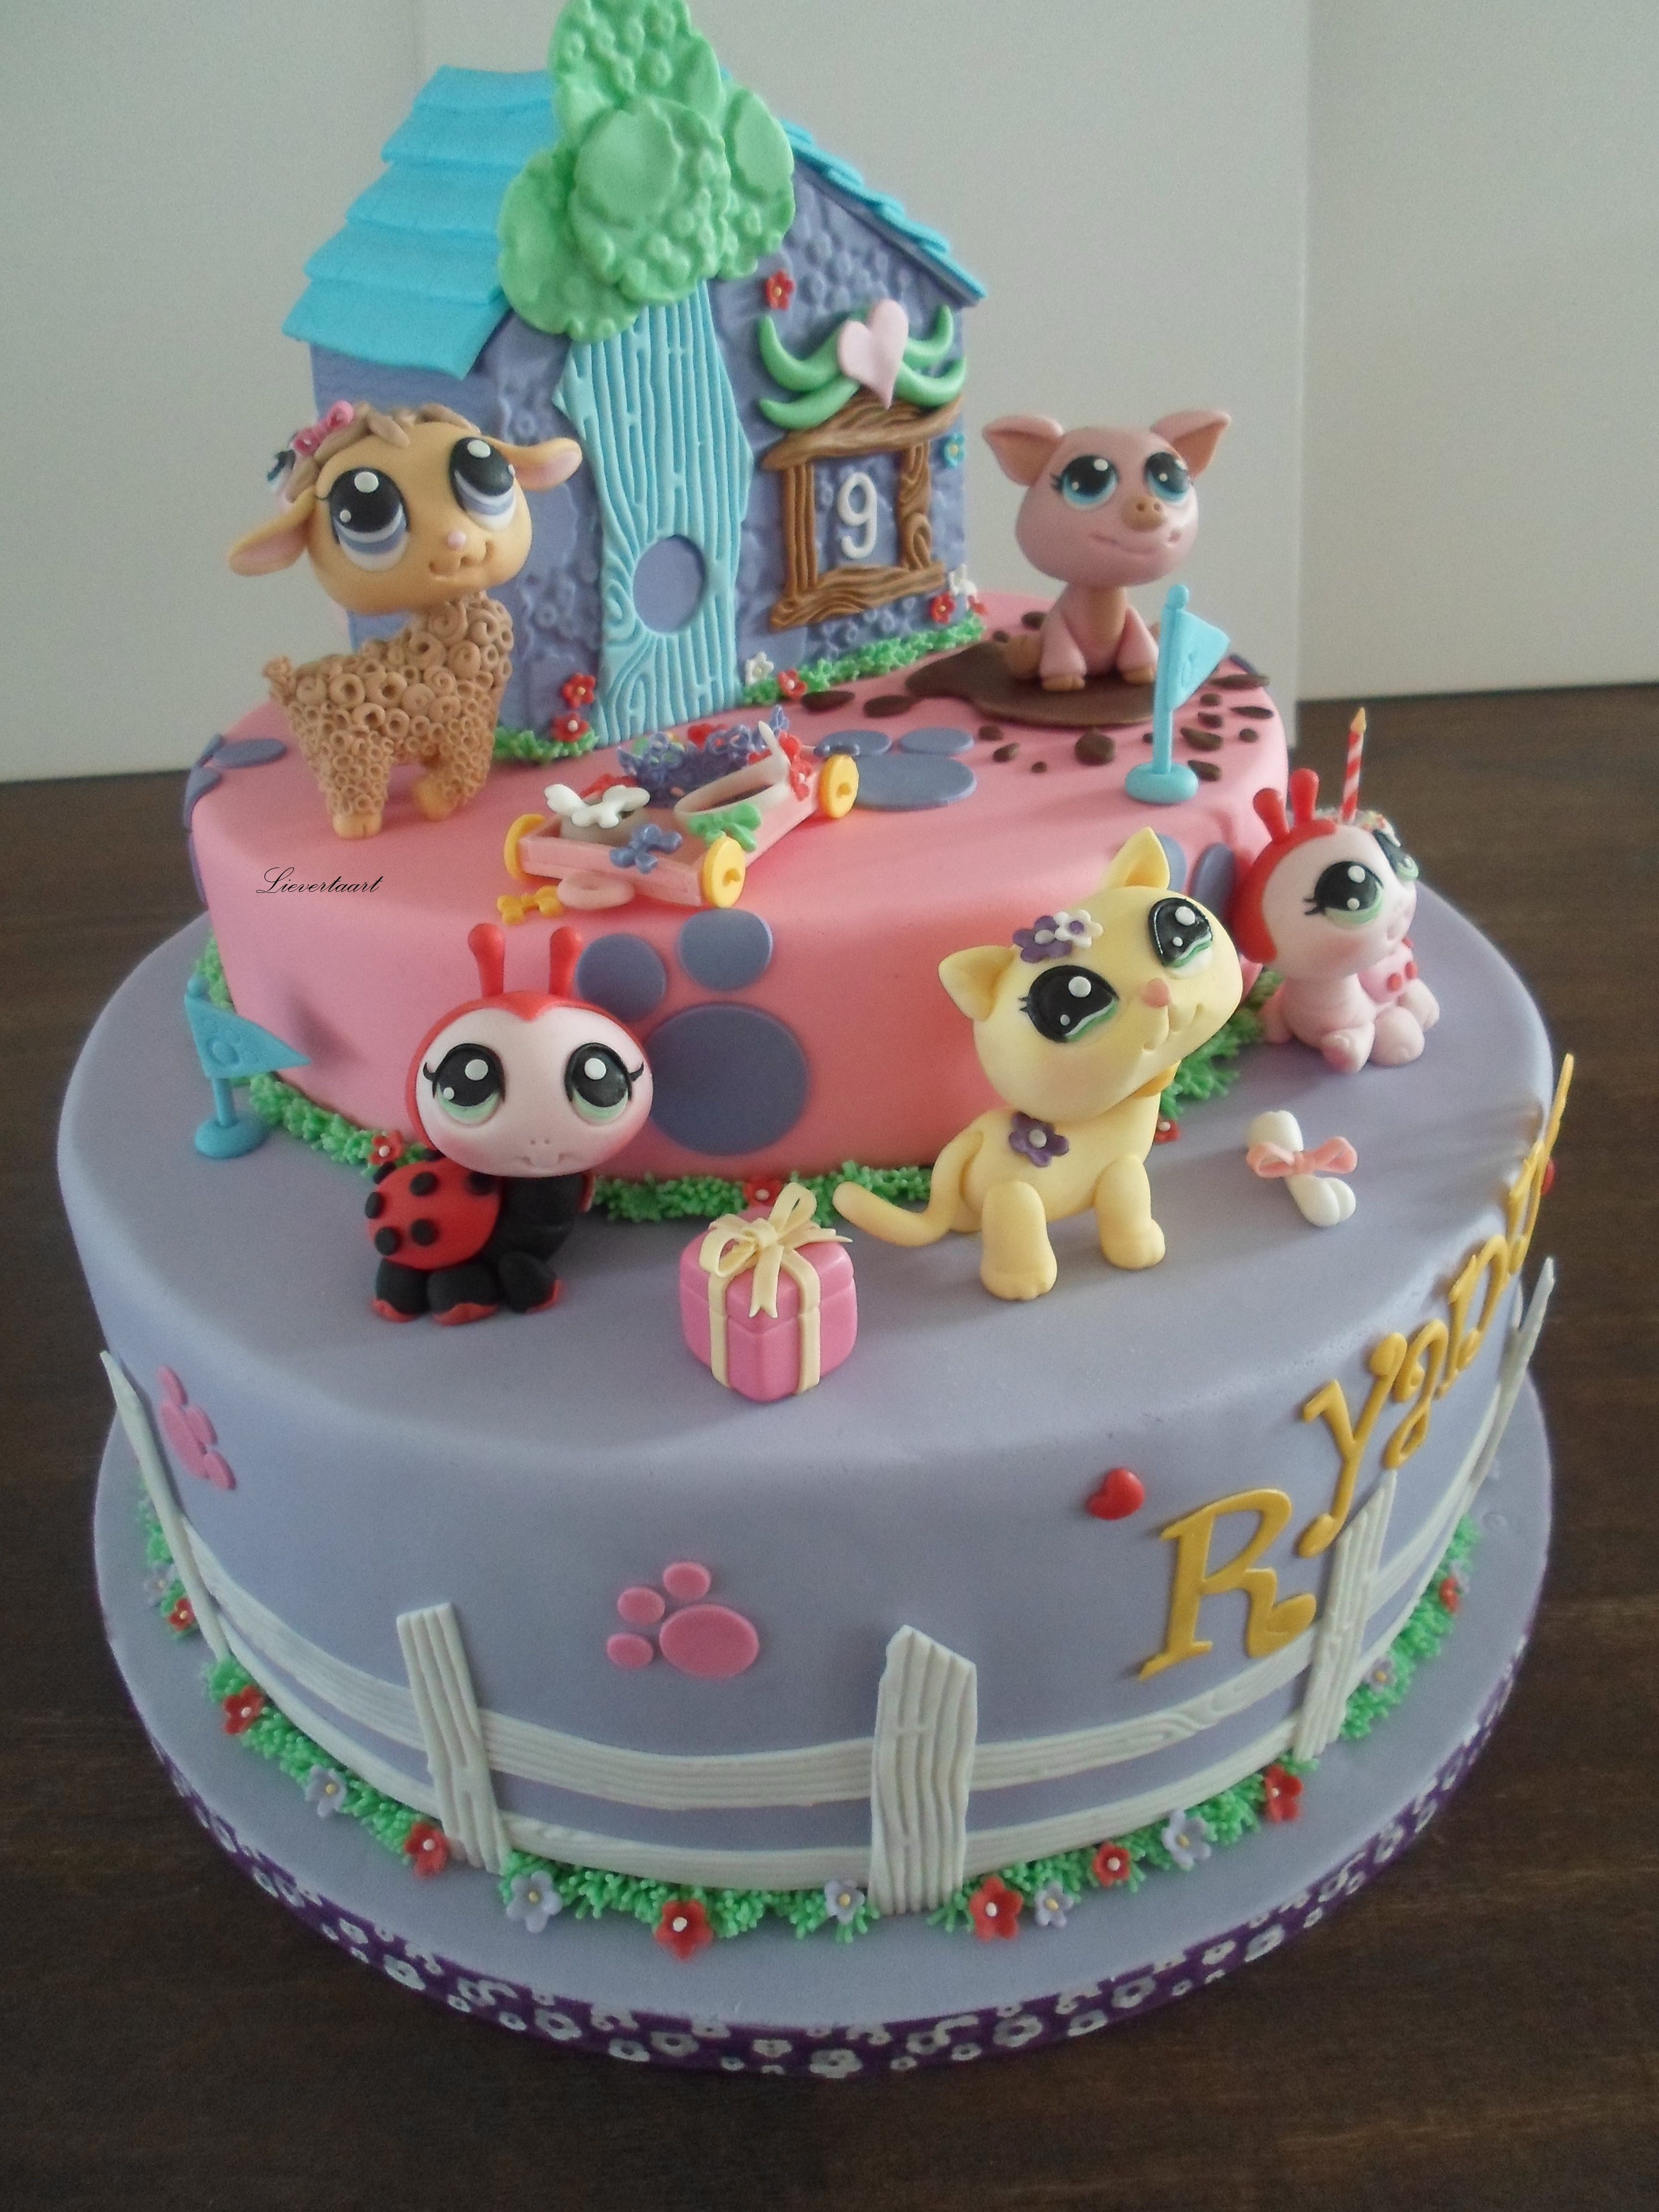 Littlest pet shop cake All made of fondant everything is edible